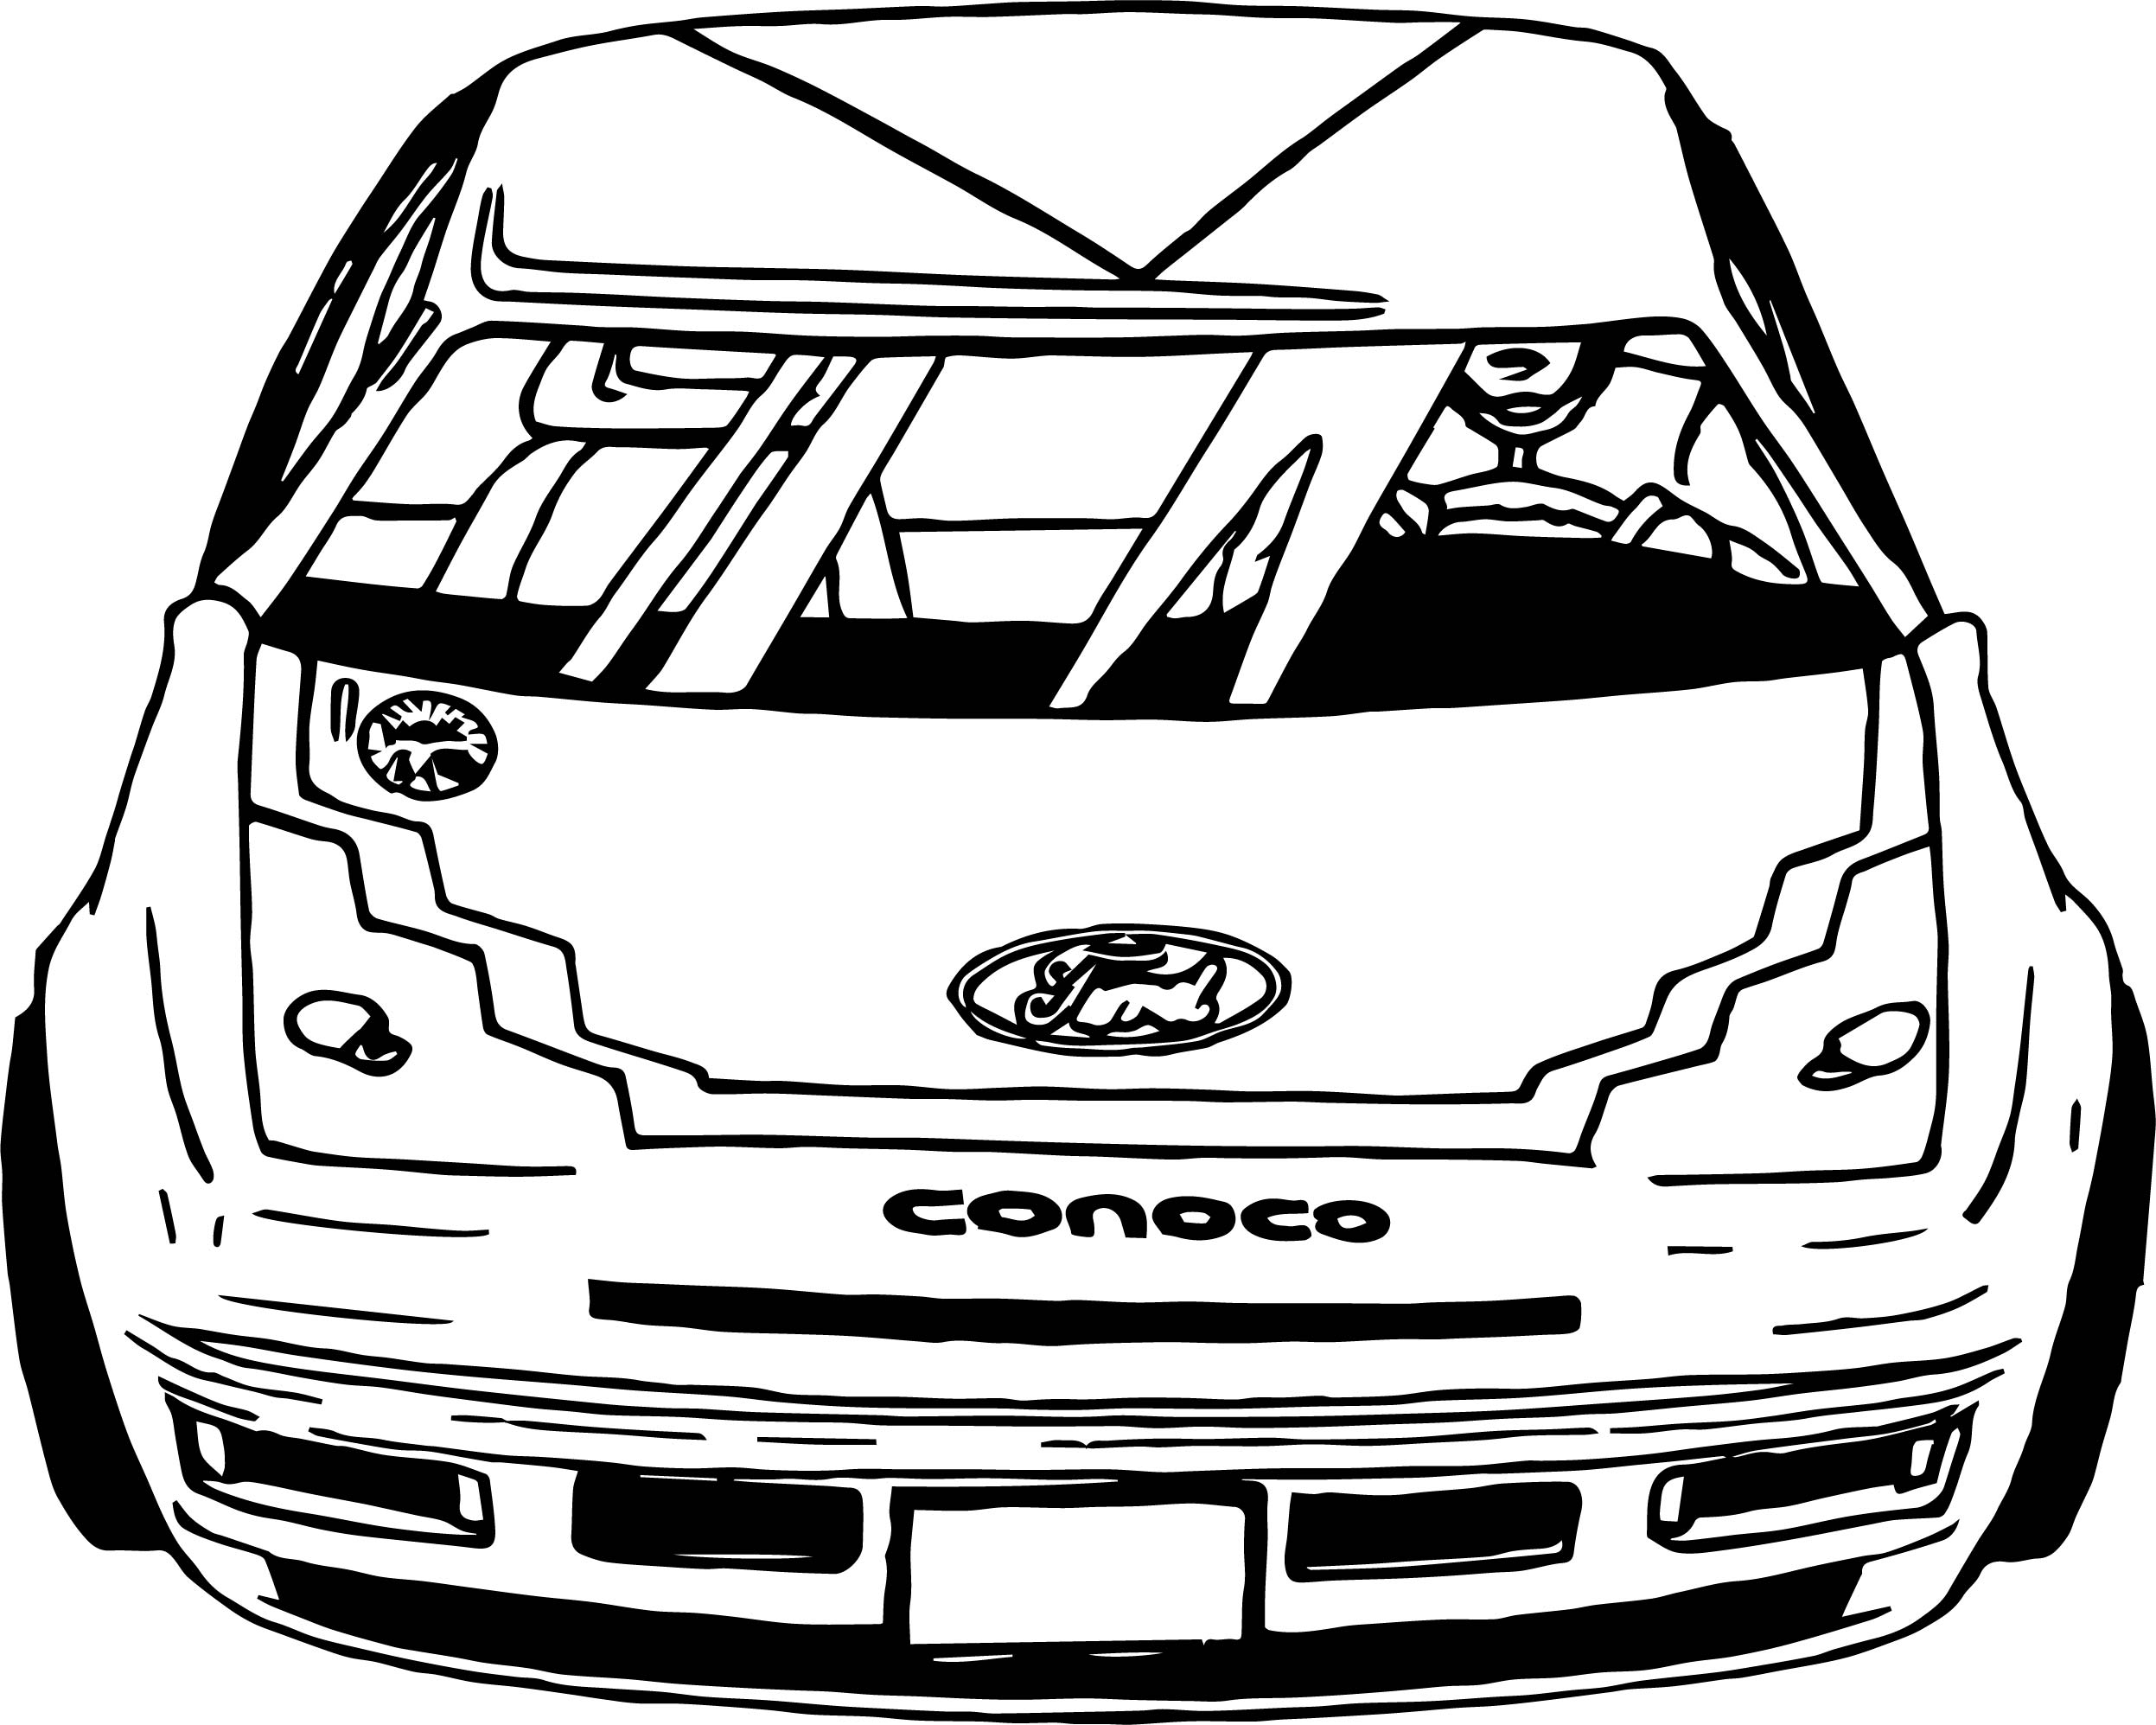 Ford Rally Race Car Coloring Page | Wecoloringpage.com